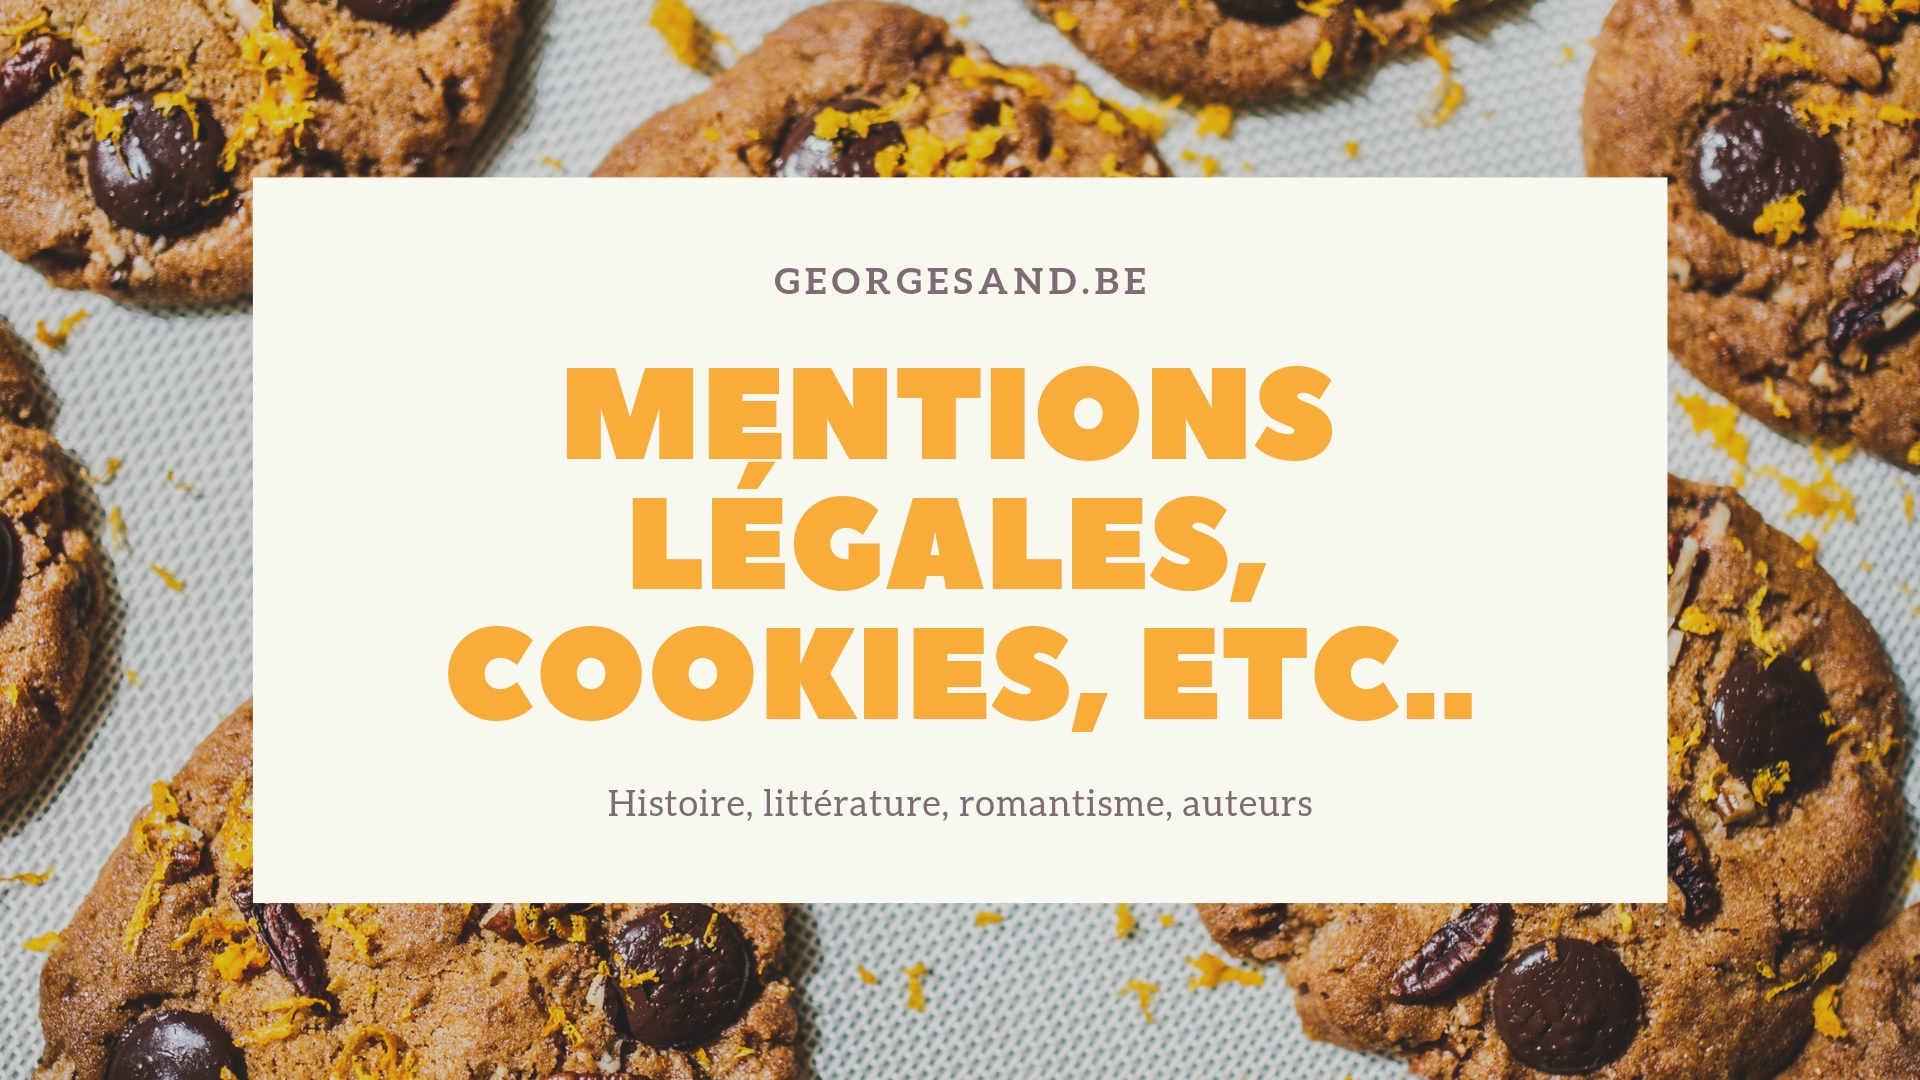 Mentions légales, cookies, etc..